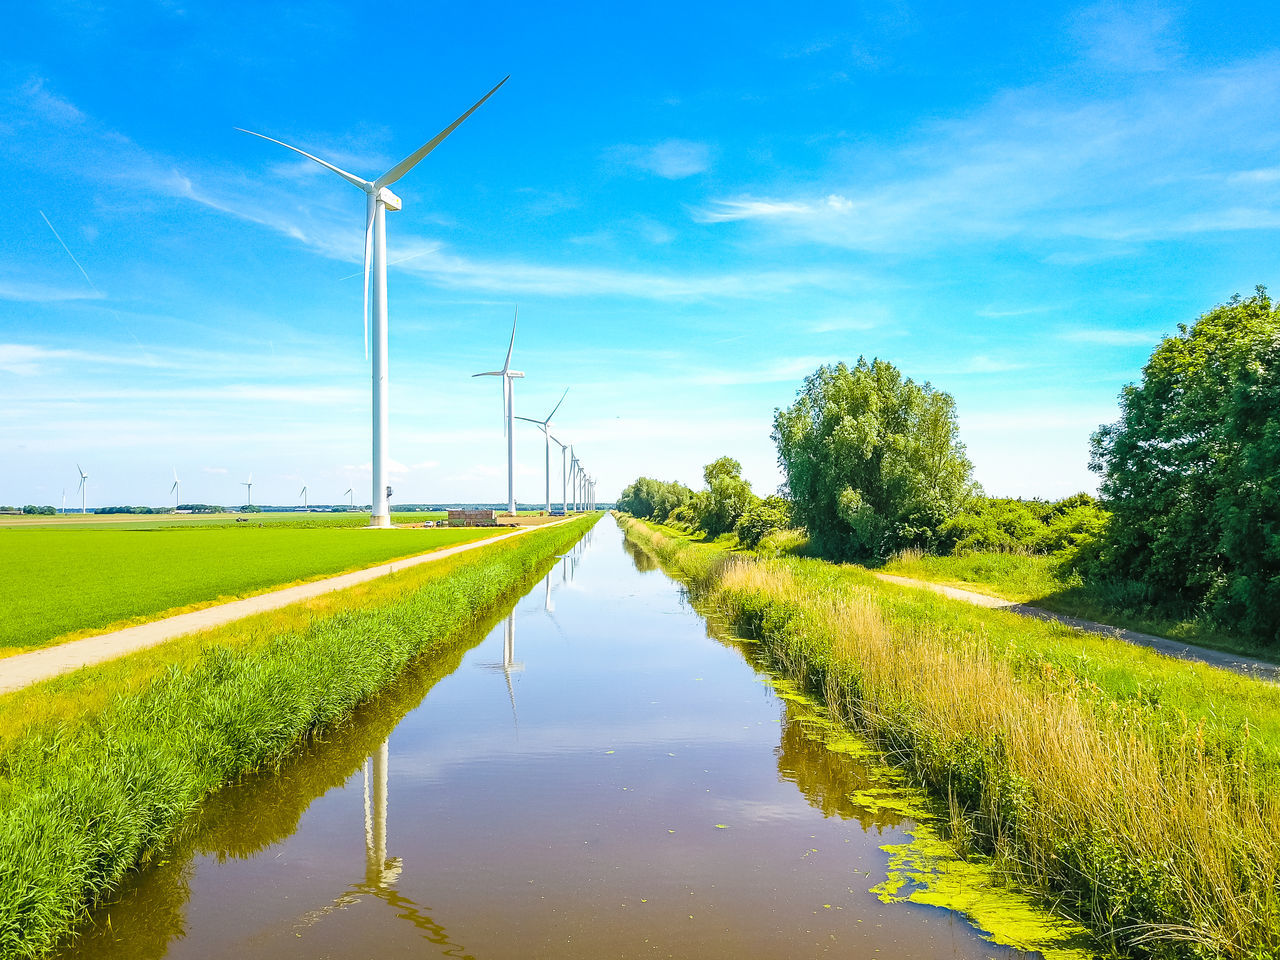 alternative energy, environmental conservation, wind power, wind turbine, renewable energy, fuel and power generation, windmill, industrial windmill, field, nature, rural scene, sky, no people, grass, day, beauty in nature, tranquil scene, green color, outdoors, tranquility, water, landscape, scenics, traditional windmill, growth, tree